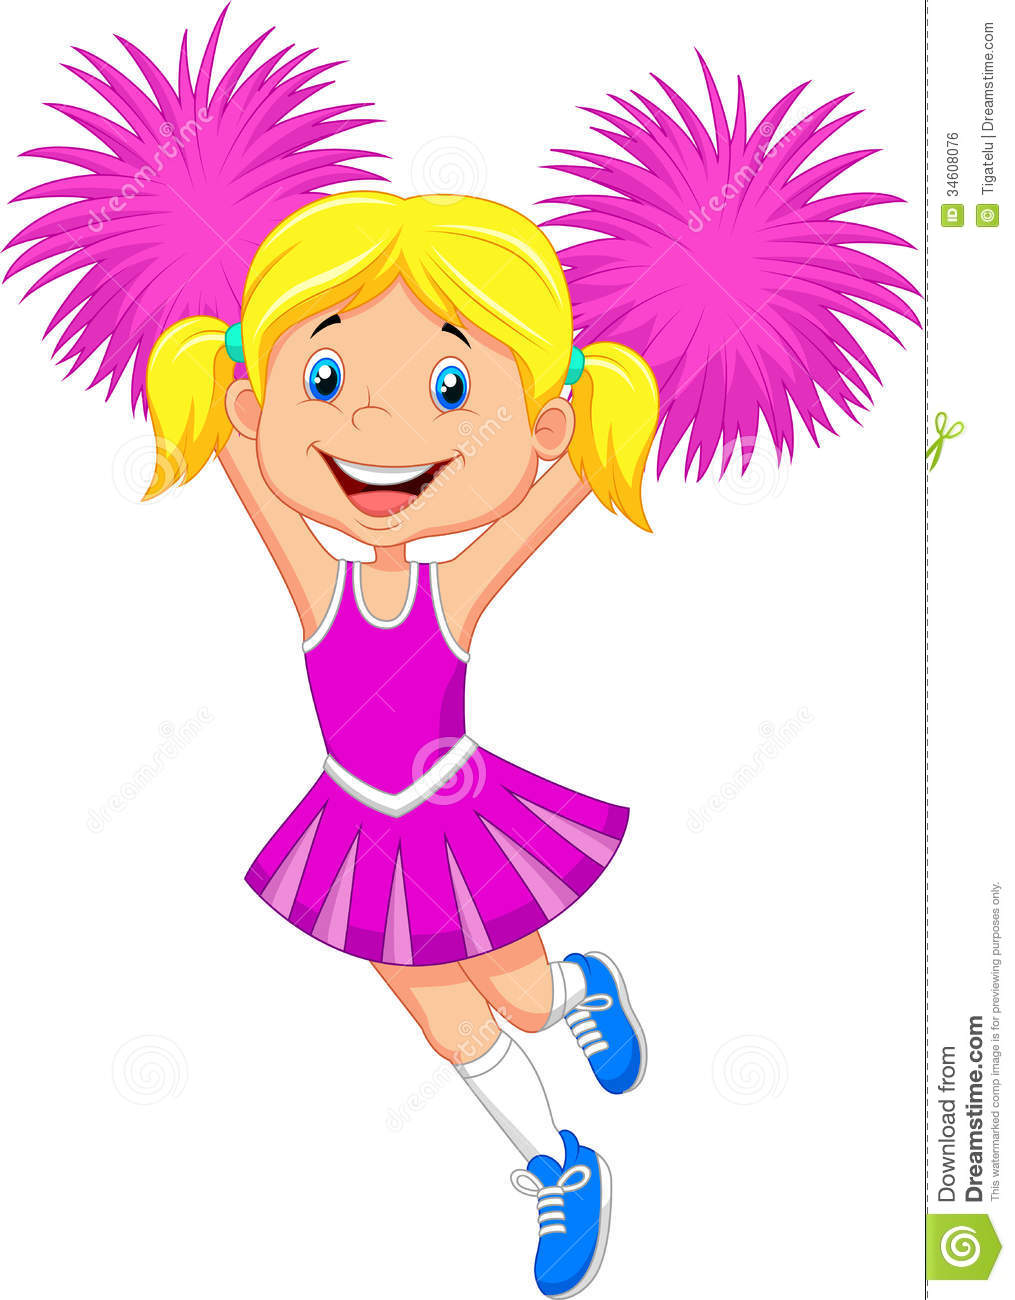 Cartoon Cheerleader With Pom Poms Royalty Free Stock Image - Image ...